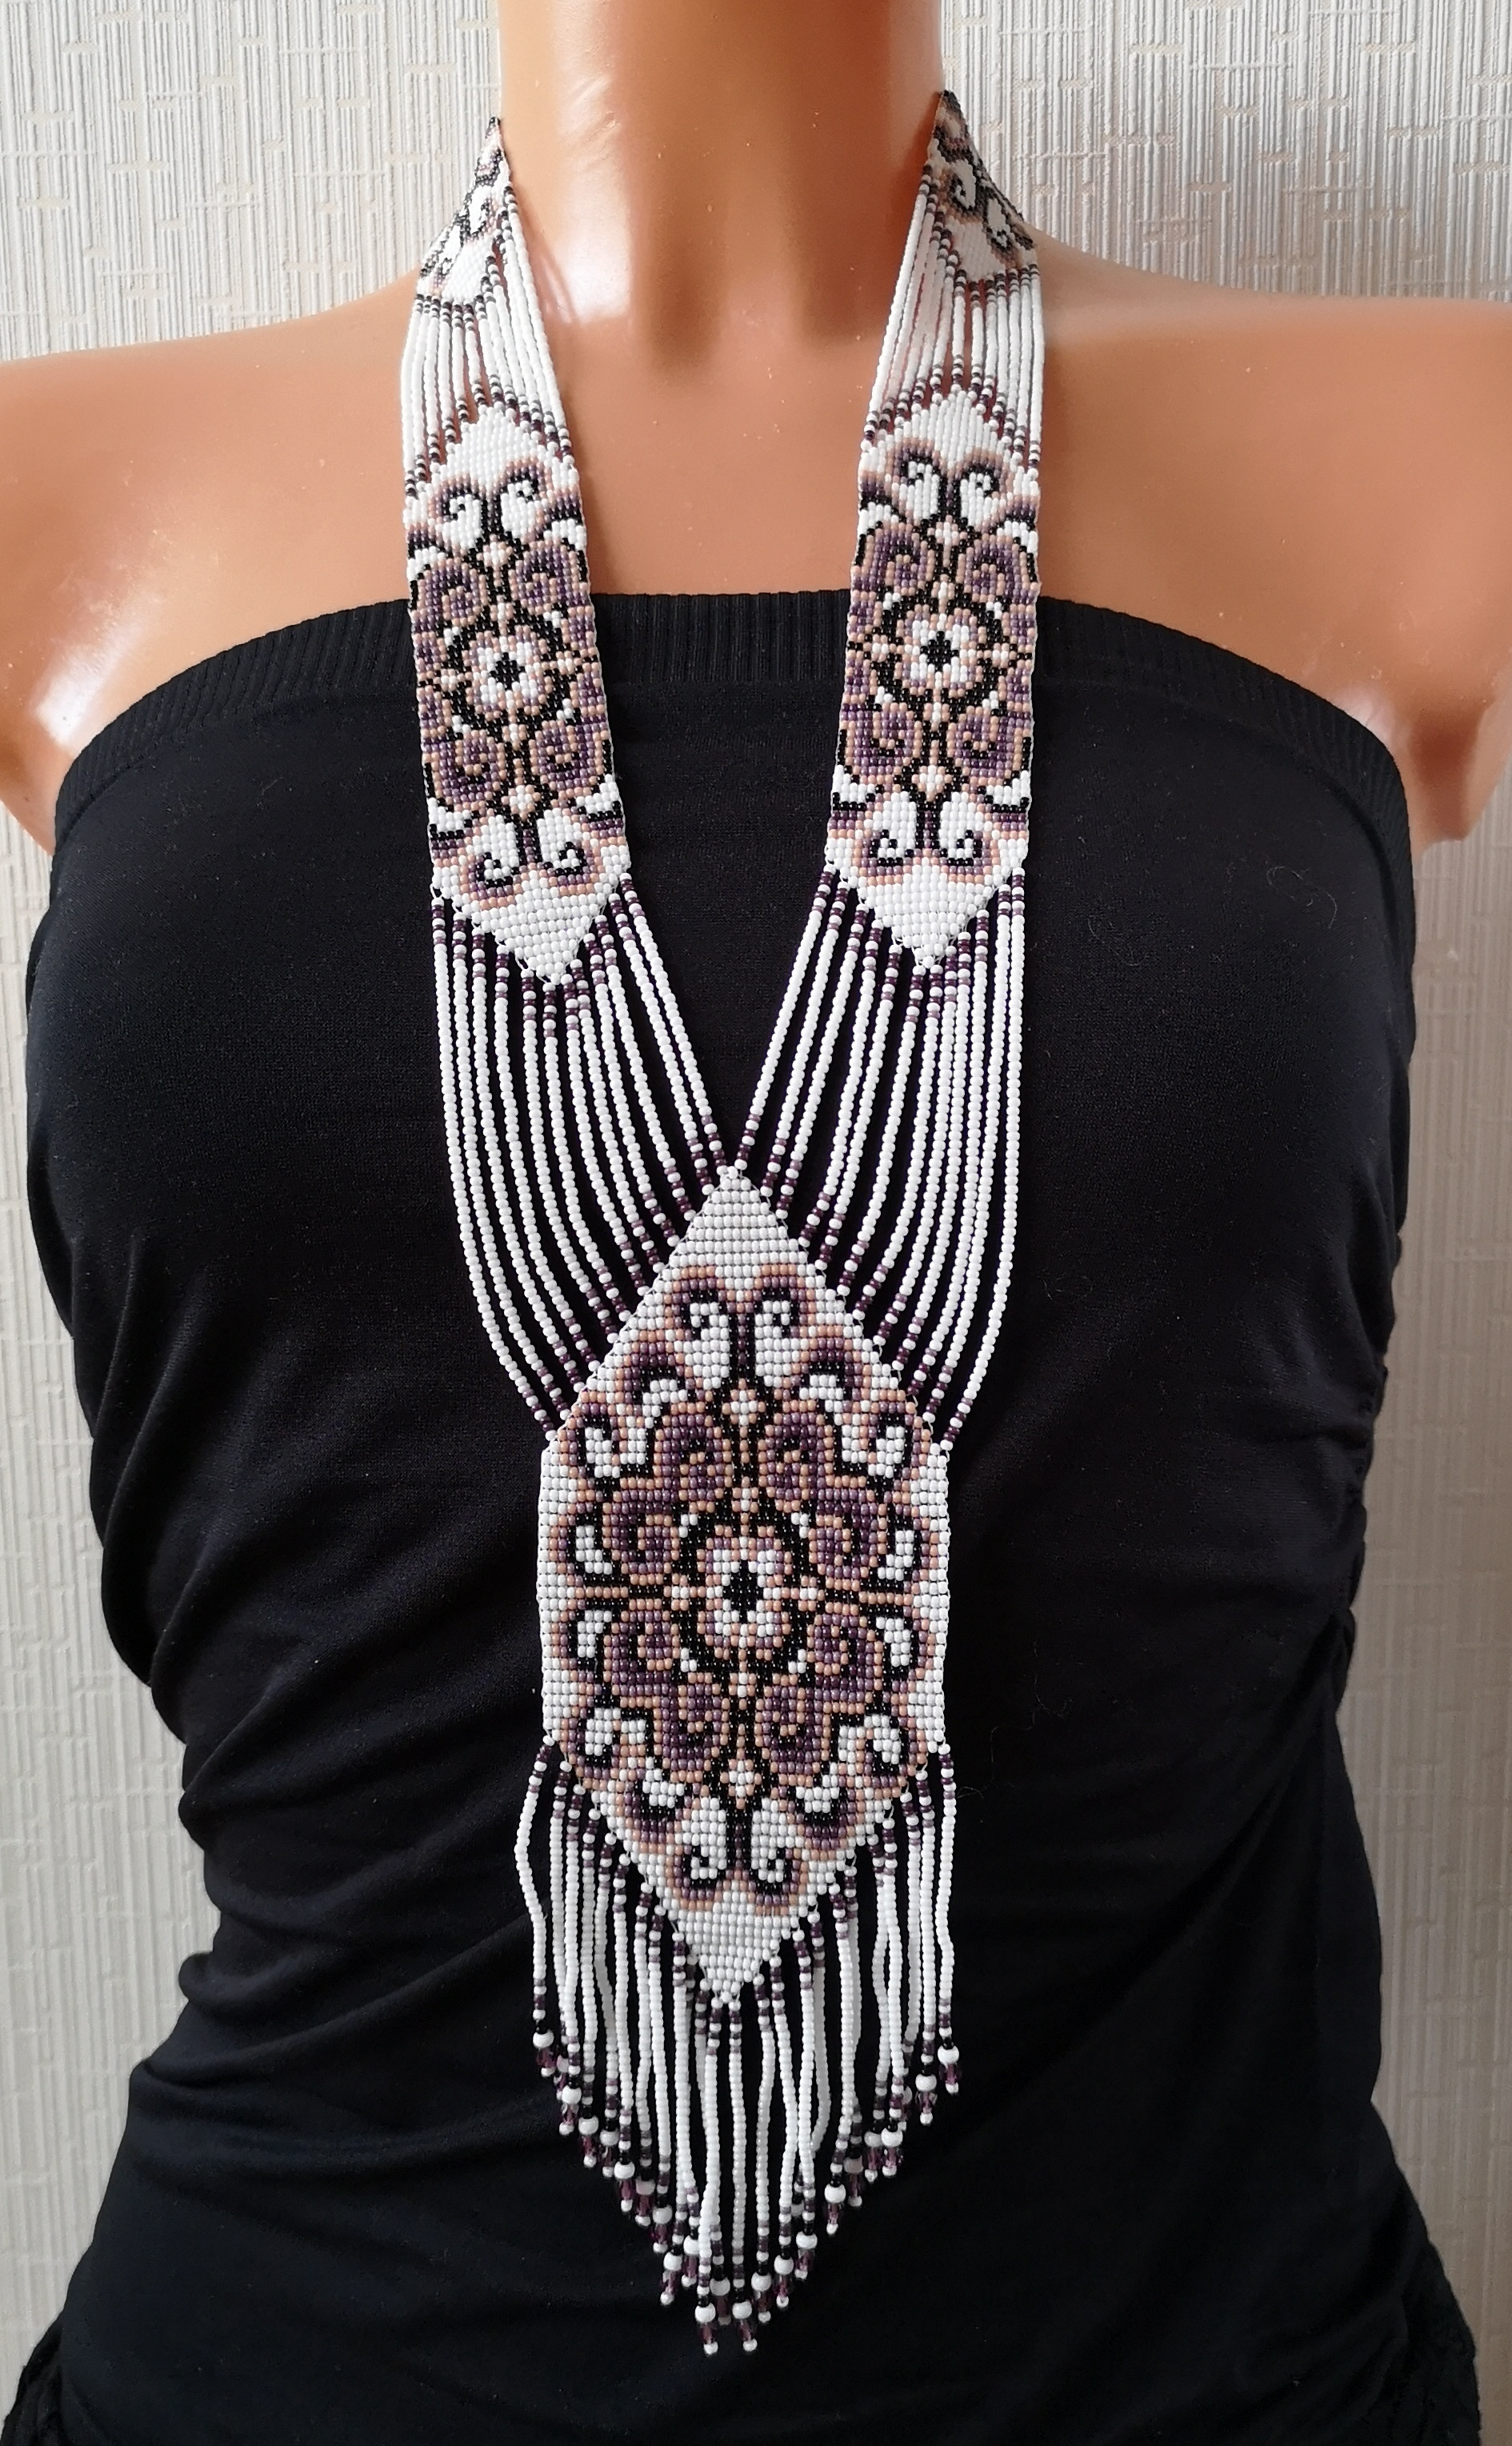 K19066-2 Seed beads necklace